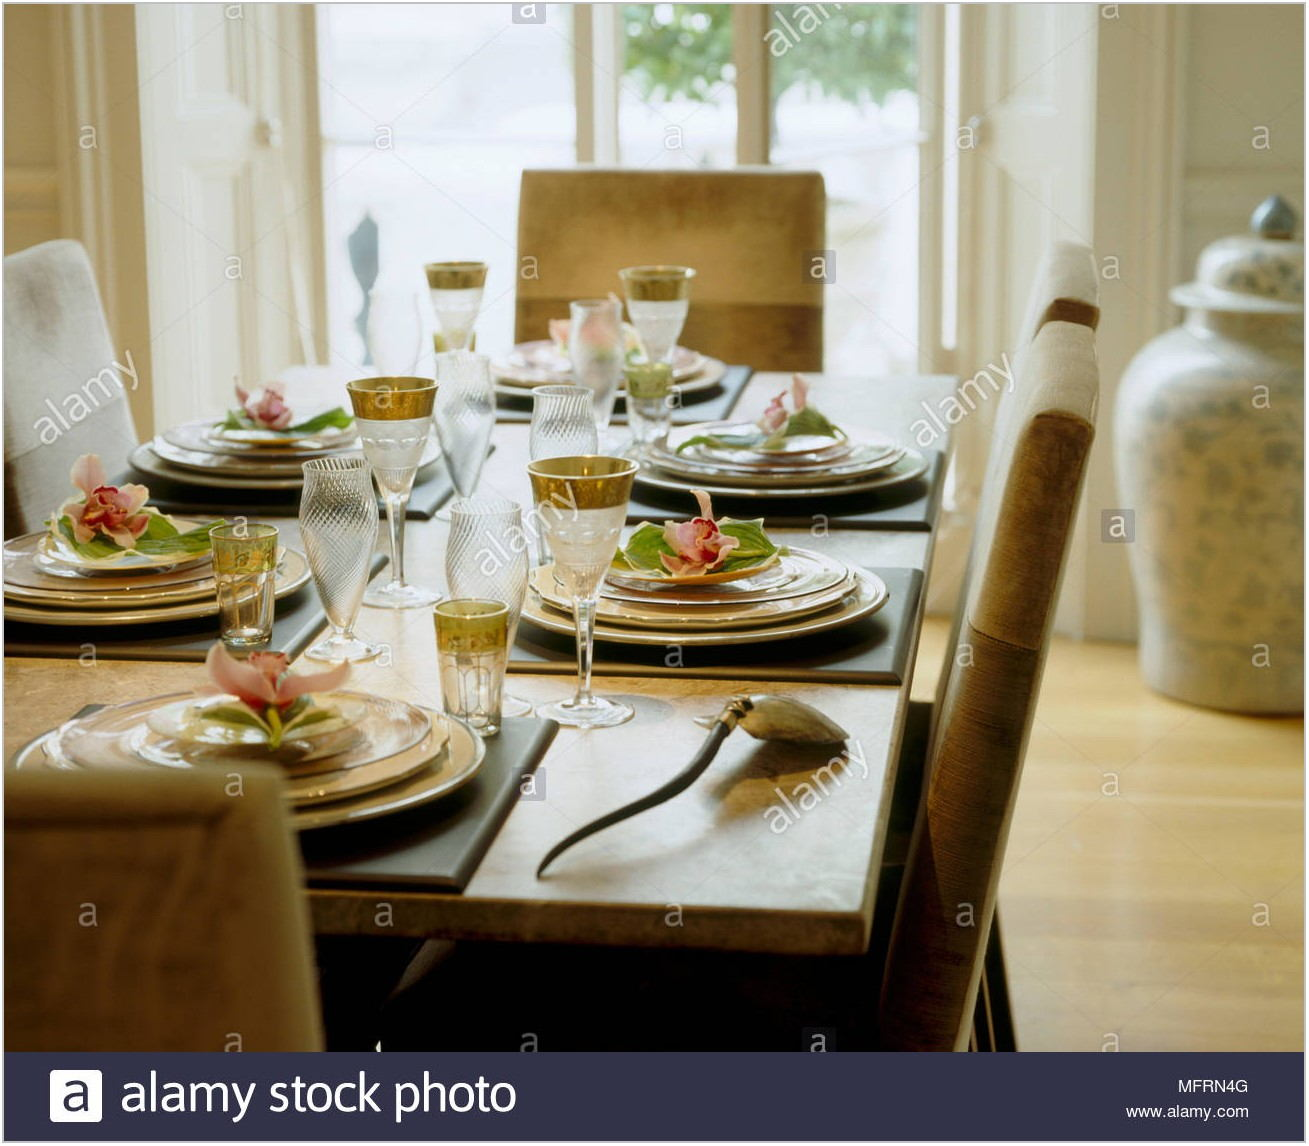 Room Place Dining Table